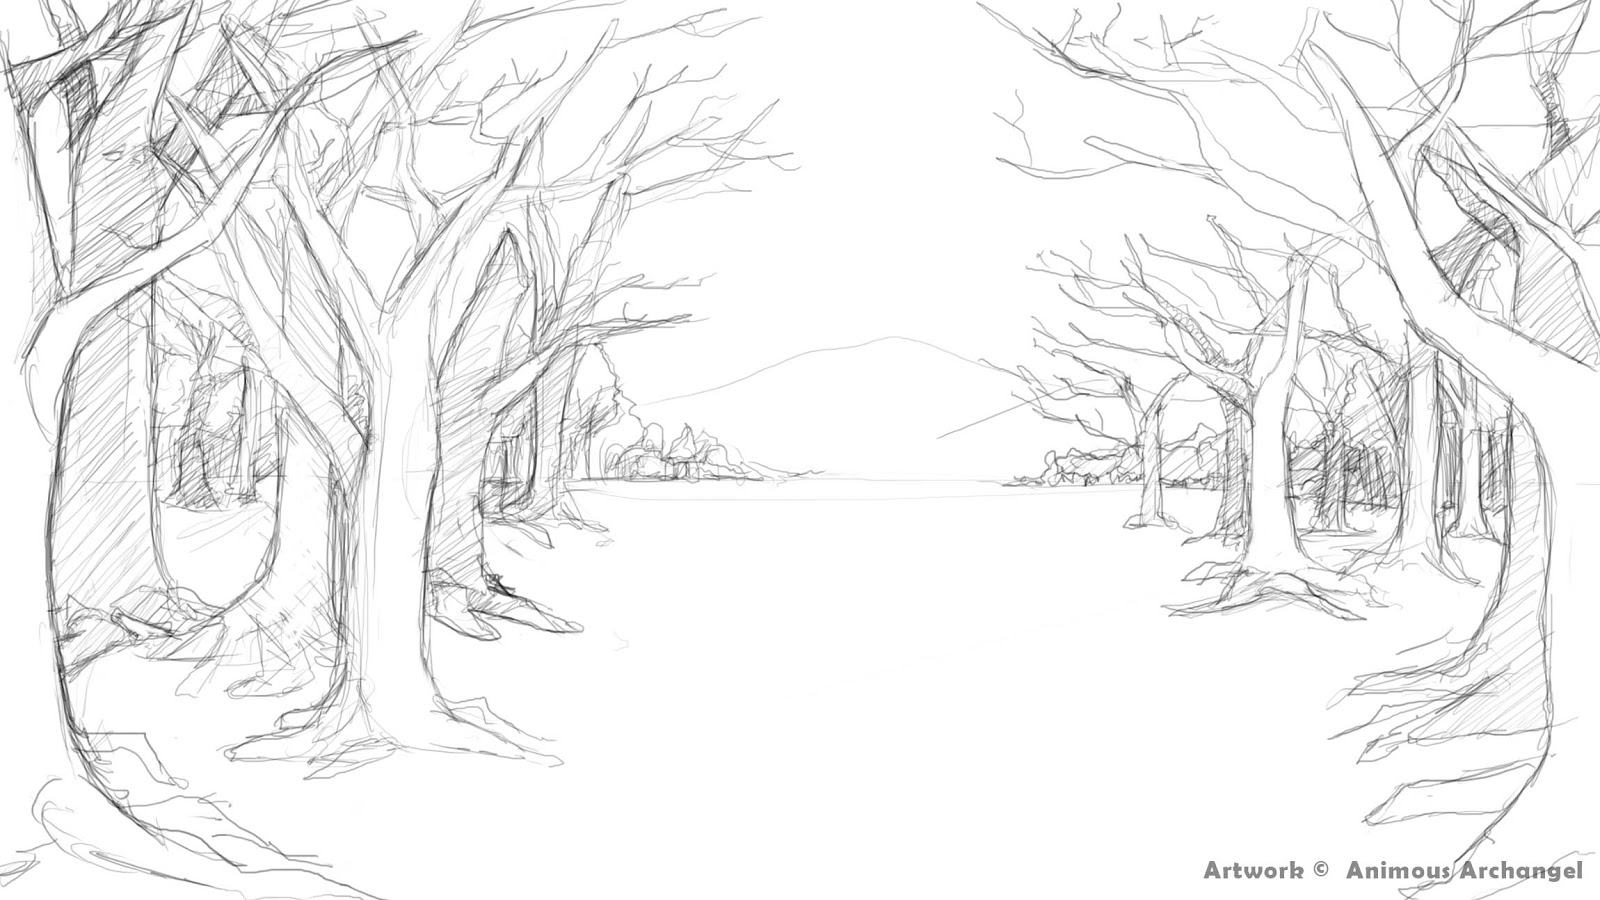 coloring pages scenery - photo#21